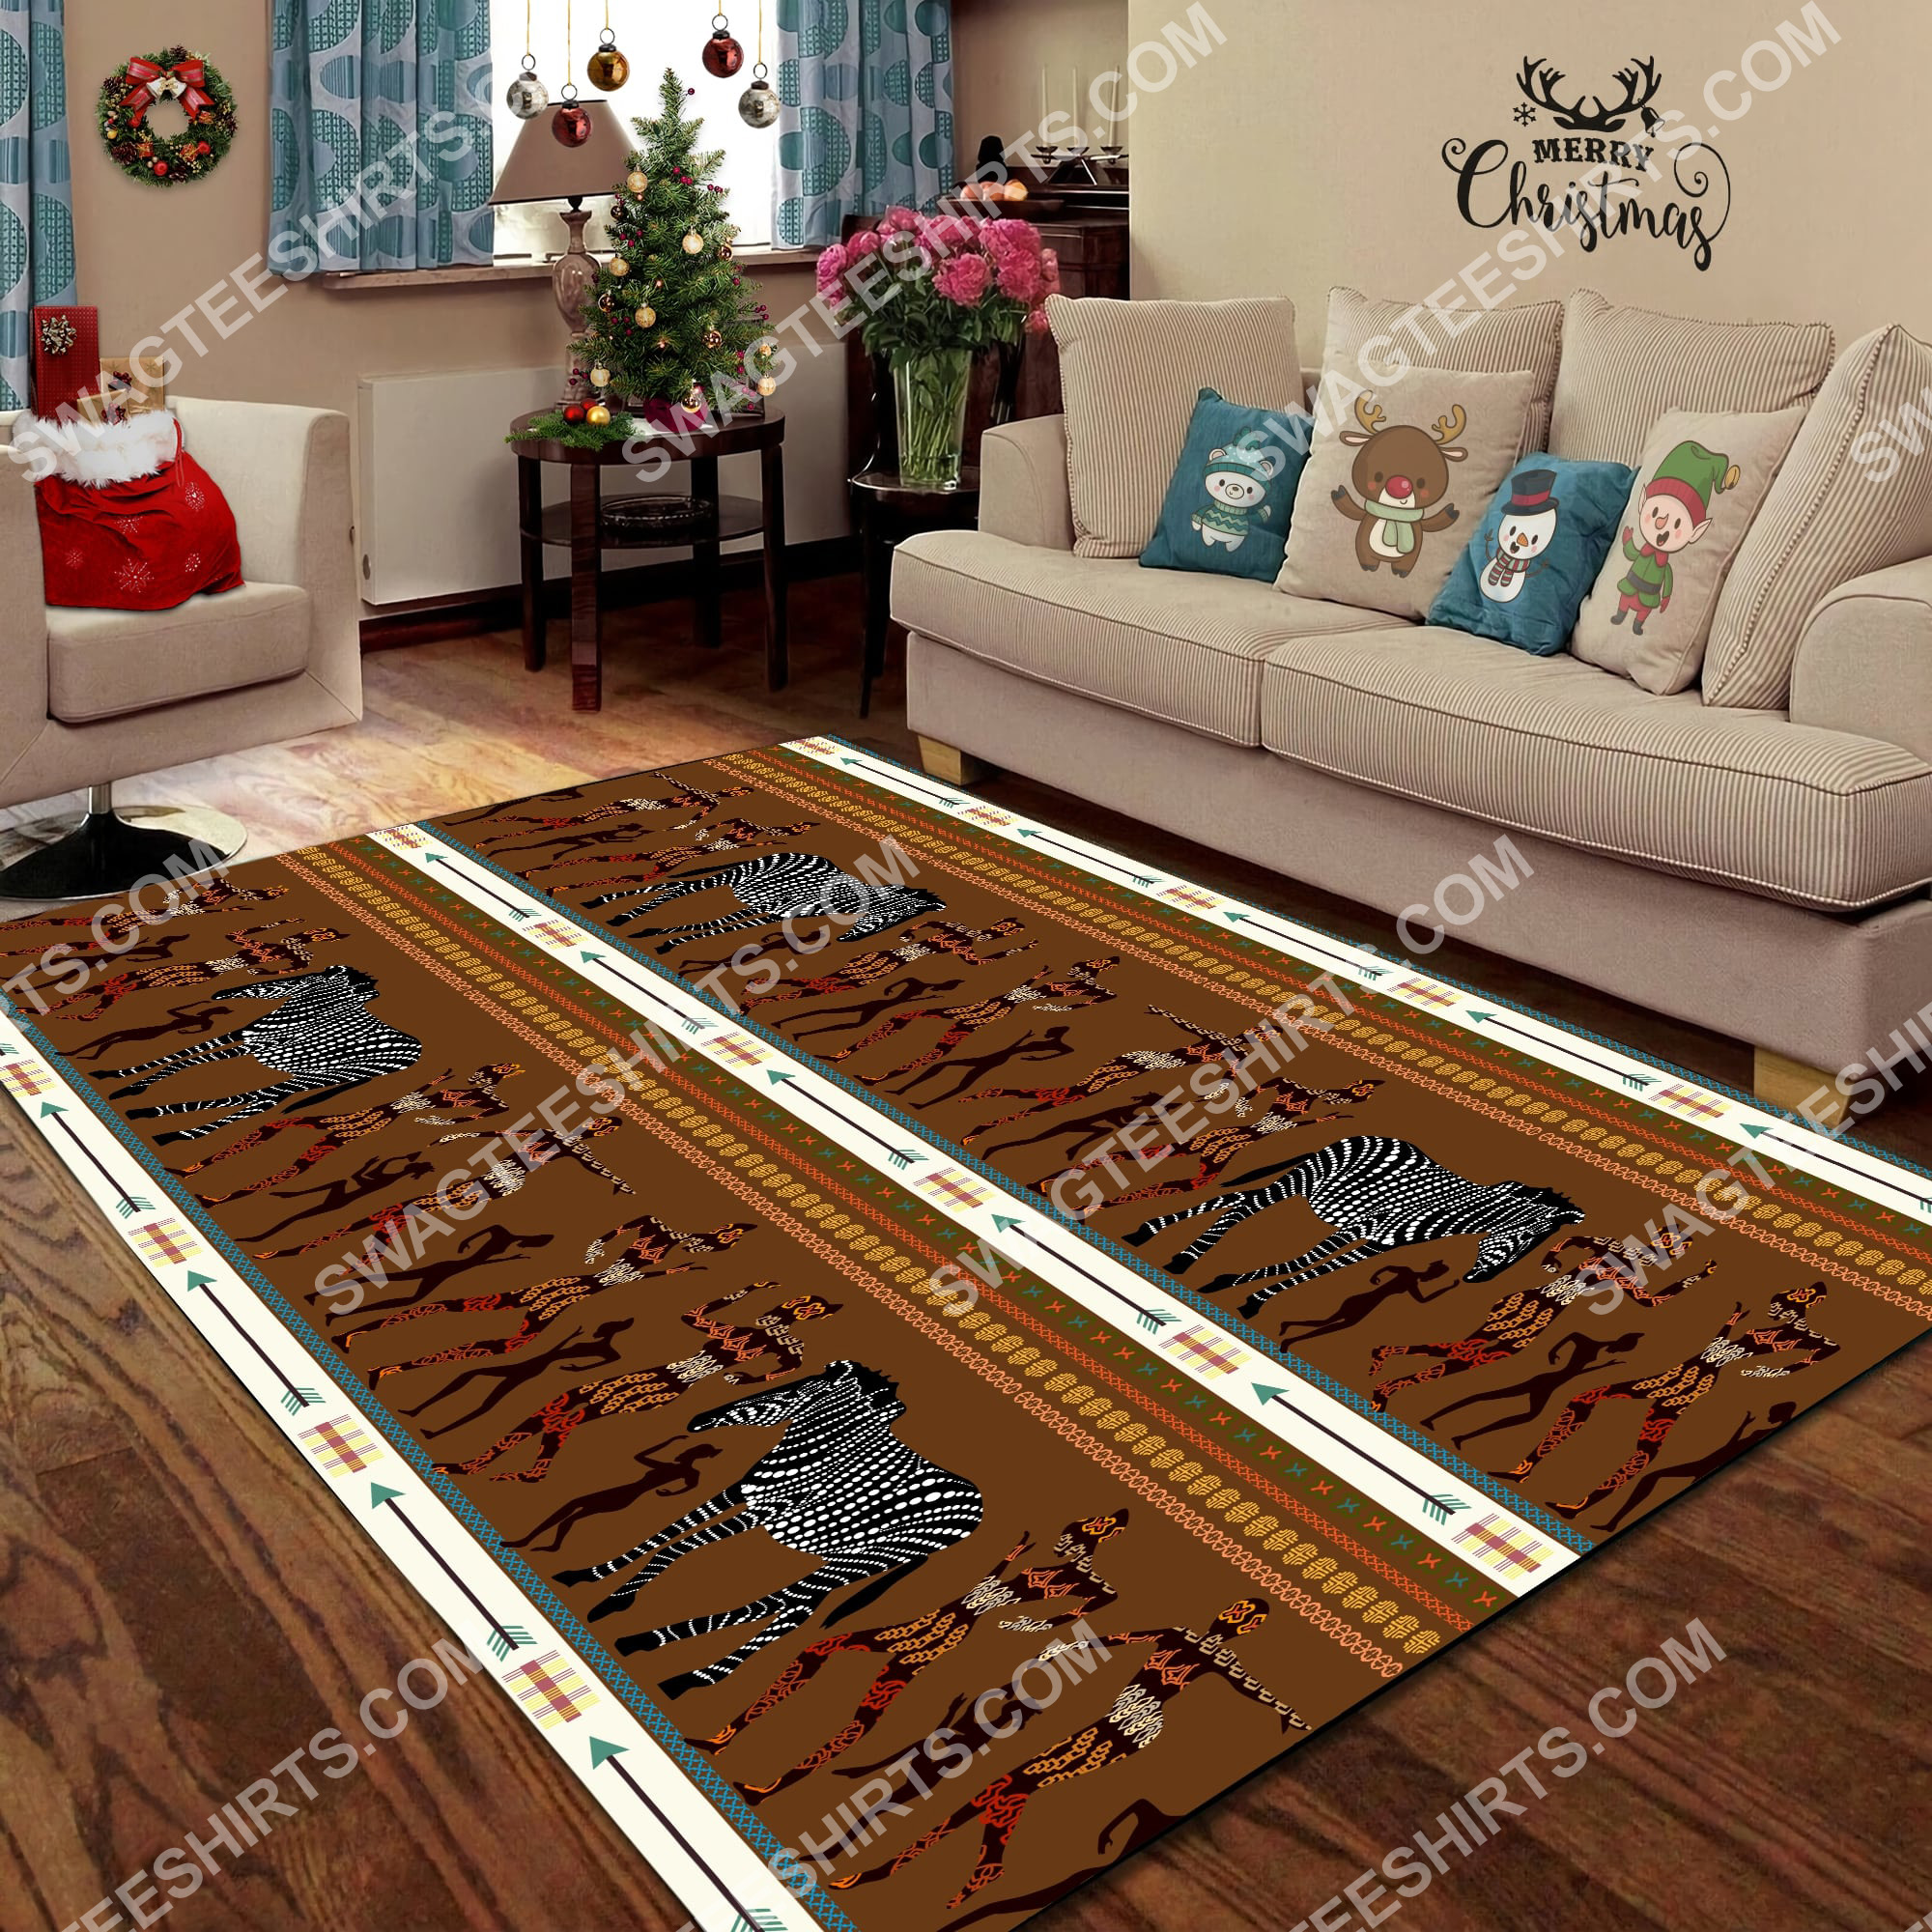 zebra dancing australian culture art all over printed rug 5(1)